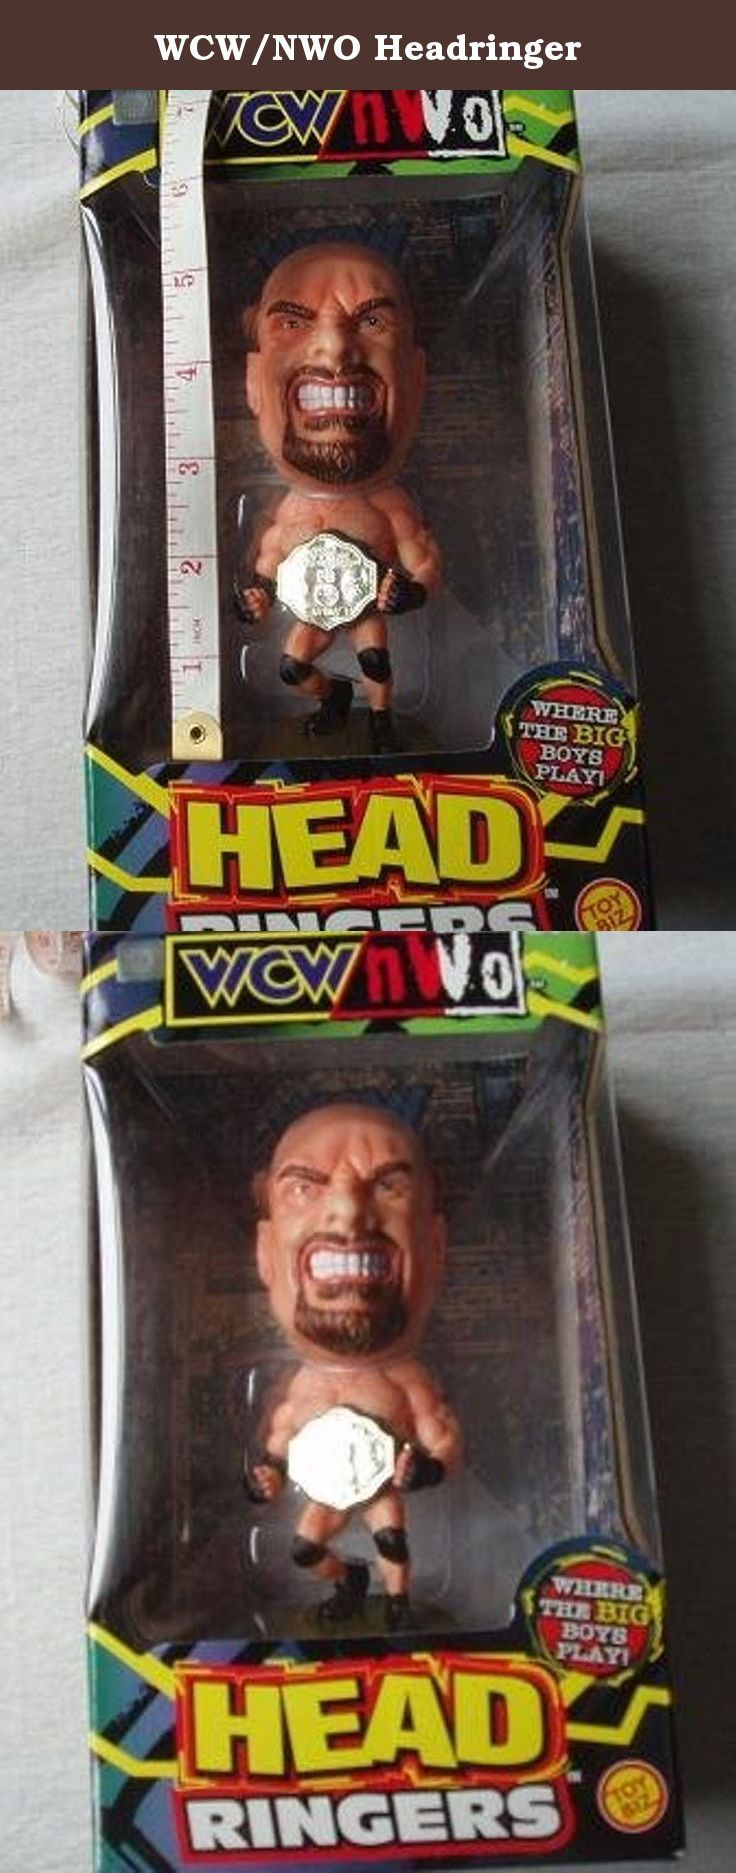 WCW/NWO Headringer. The most popular superstars in WCW/NWO wrestling have been transformed into HEAD RINGERS-stylized cartoon caricatures that perfectly capture each wrestlers distinctive persona. Each wrestler is sculpted in an action pose and comes with a character dedicated accessory. The attractive bases make them easy for you to display them for everyone to see.